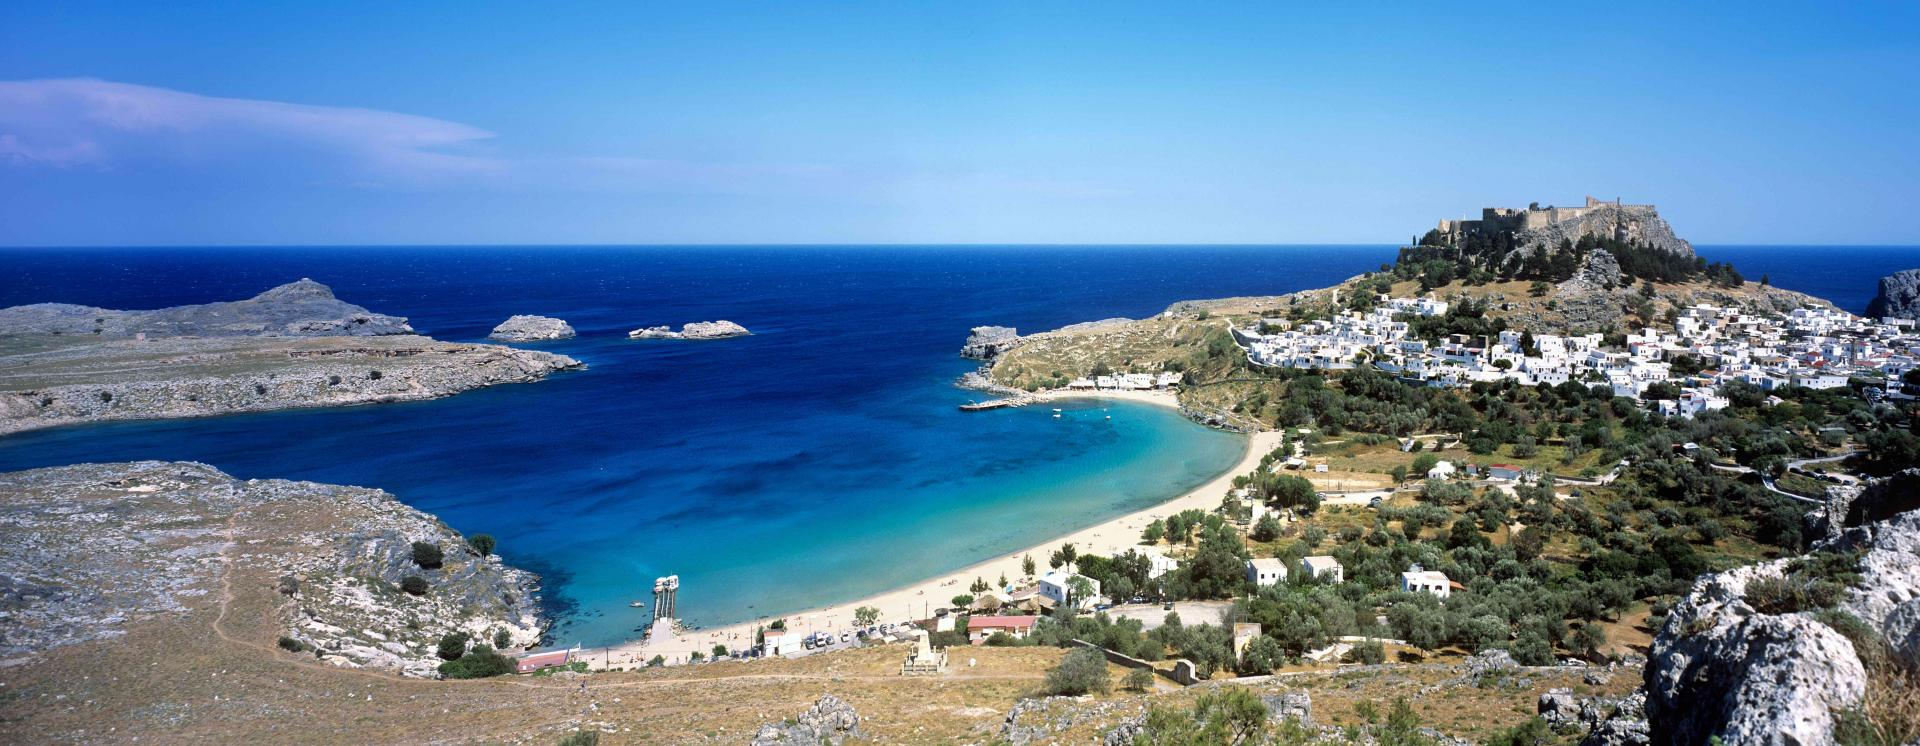 book_a_Boat_Trip_to_Lindos_with_Swimming_Stops_with_rhodes_rental_services_01